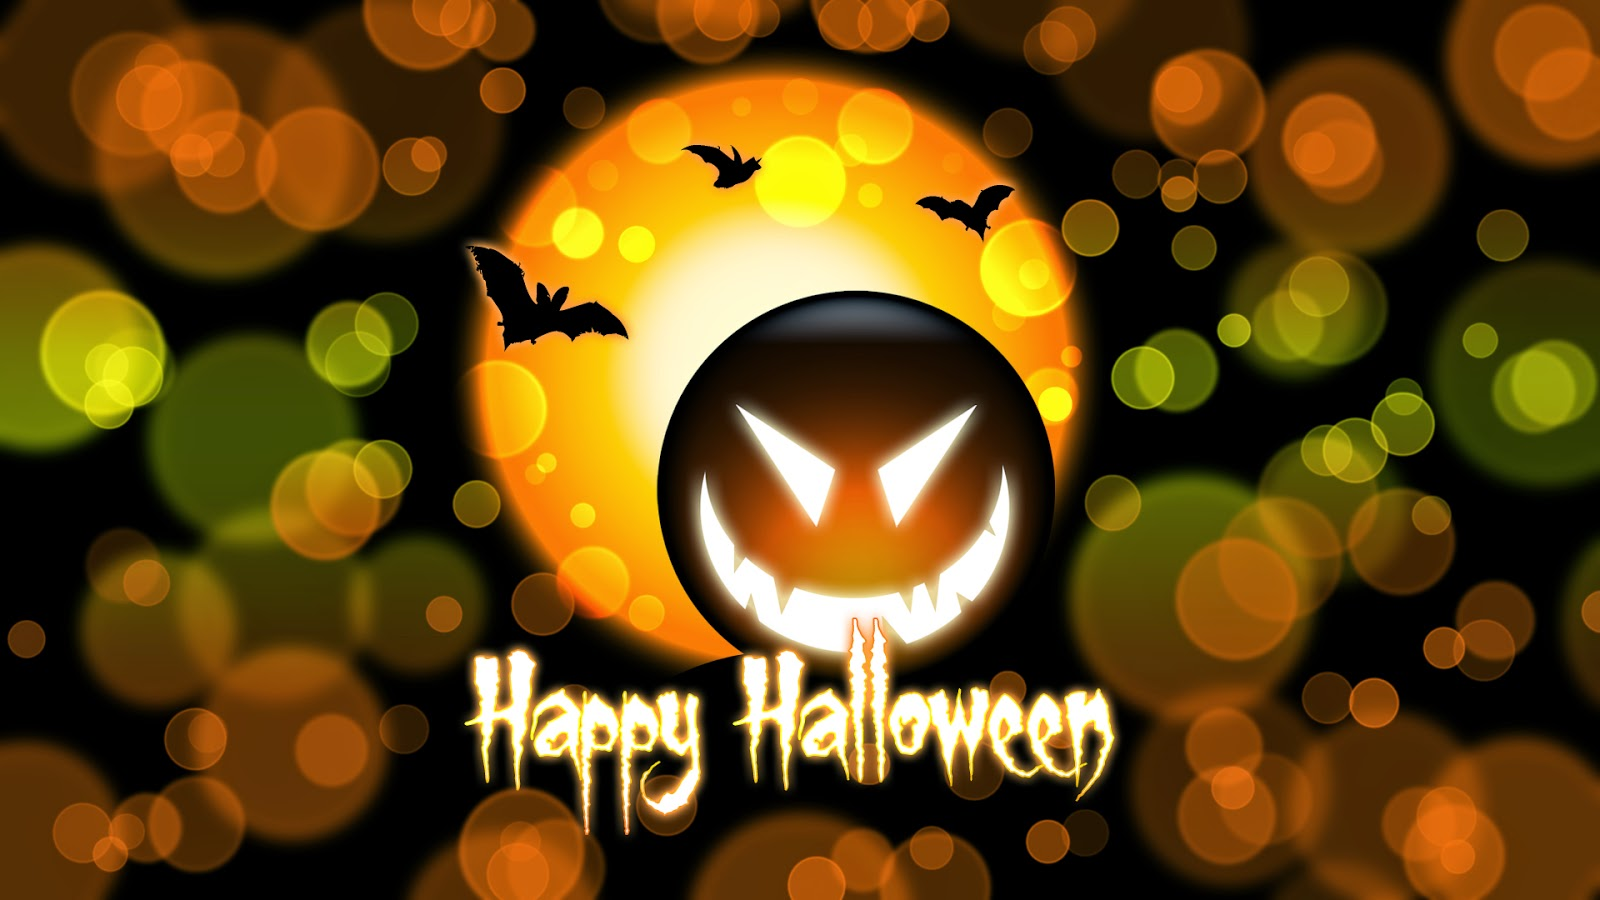 Happy-halloween-wishes-text-card-for-family-friends-sharing-free-download.jpg